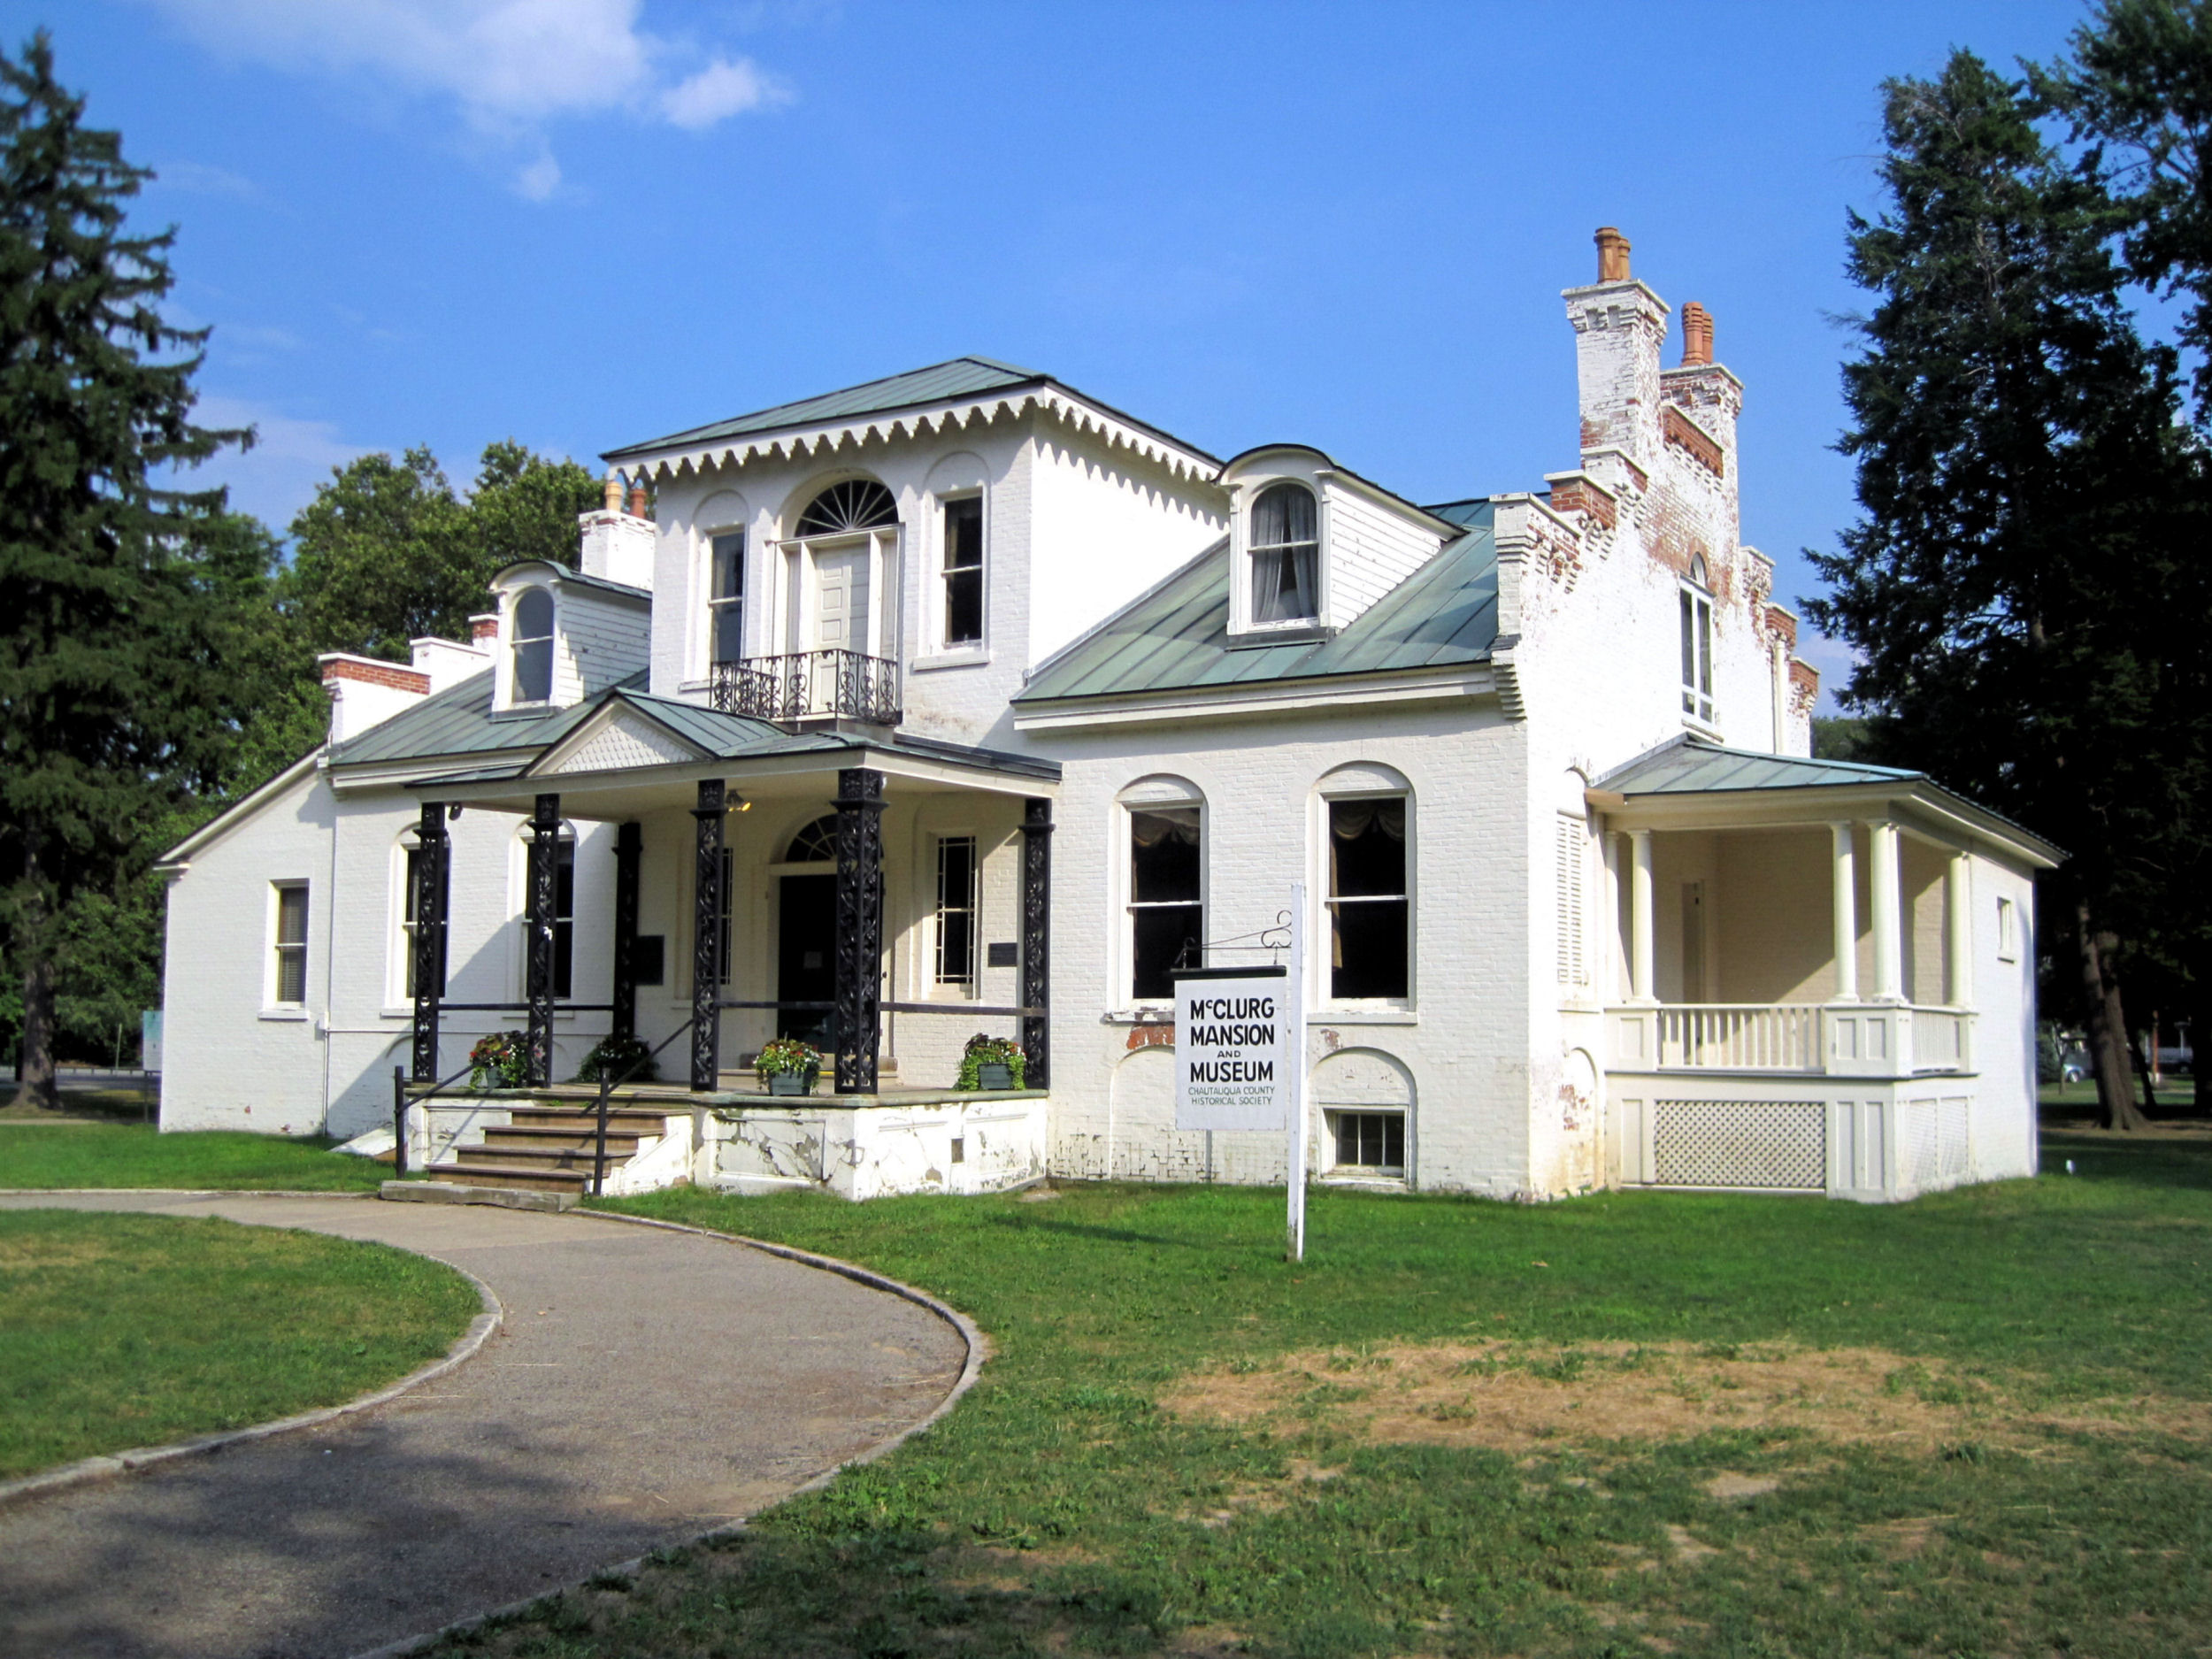 Chautauqua County Historical Society, McClurg Mansion